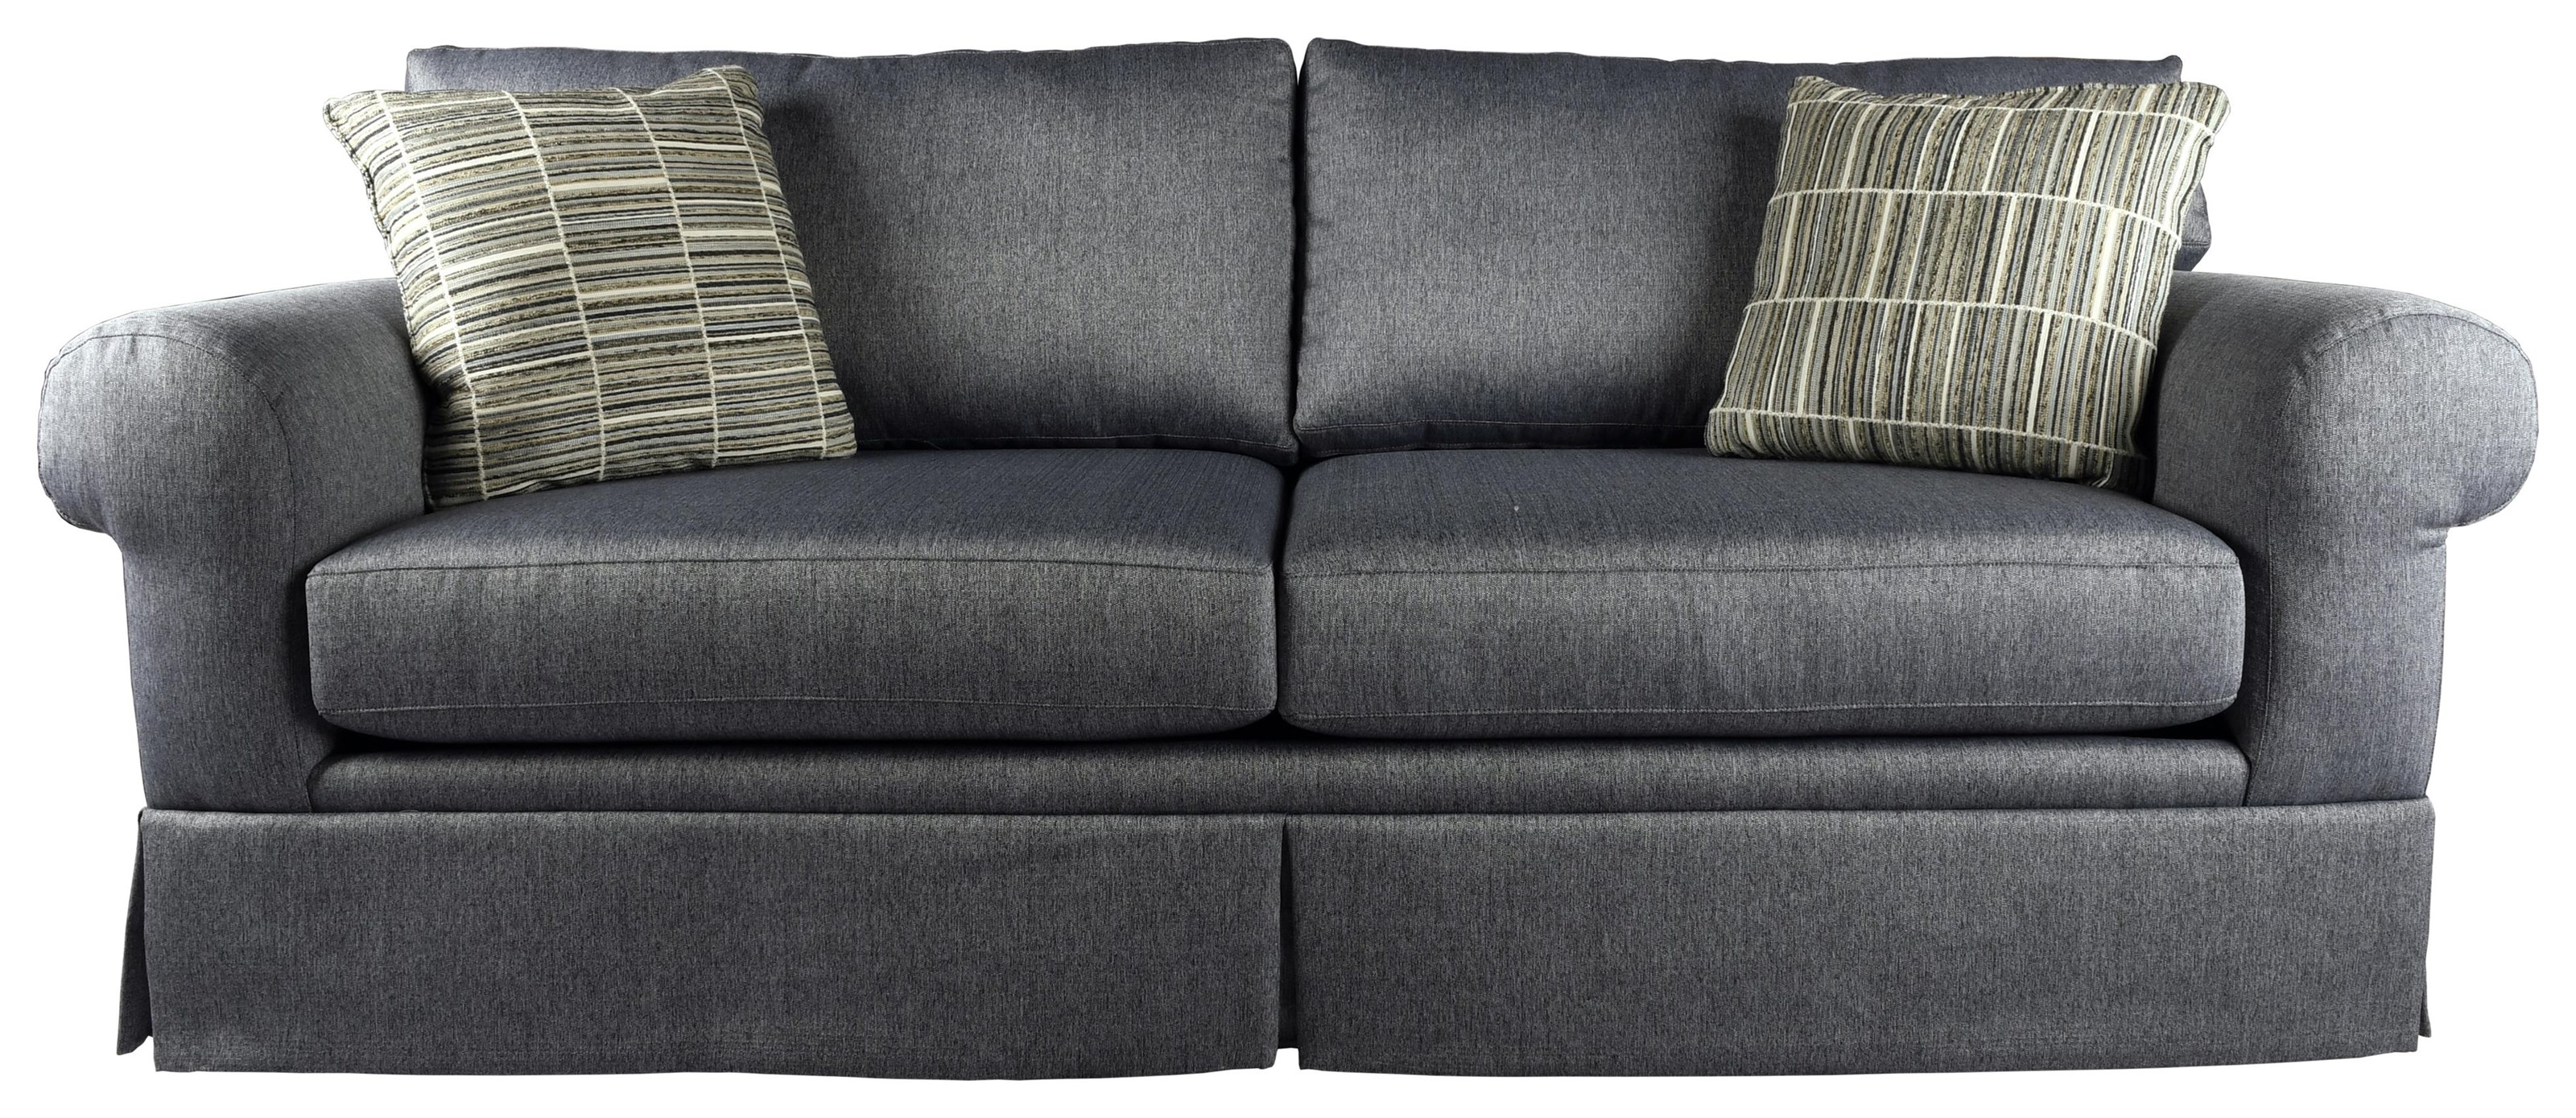 9594 Sofa by Southside Designs at Bennett's Furniture and Mattresses